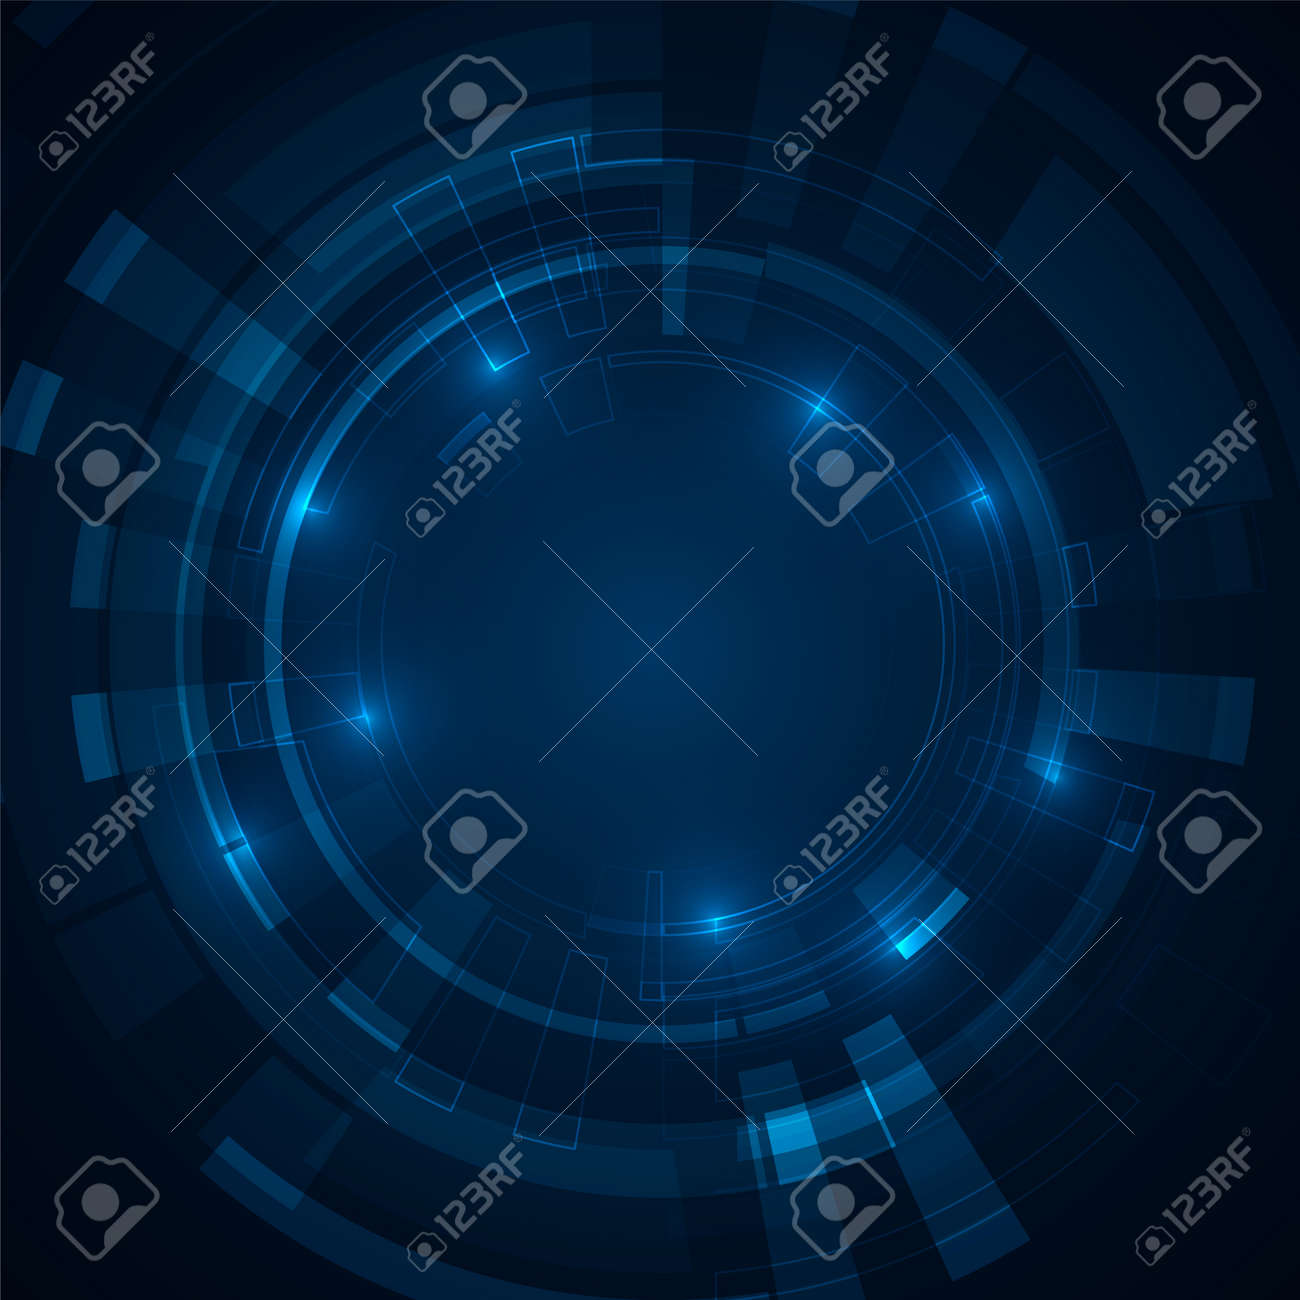 Abstract futuristic circles. Science technology machine. Graphic concept for your design - 166192021